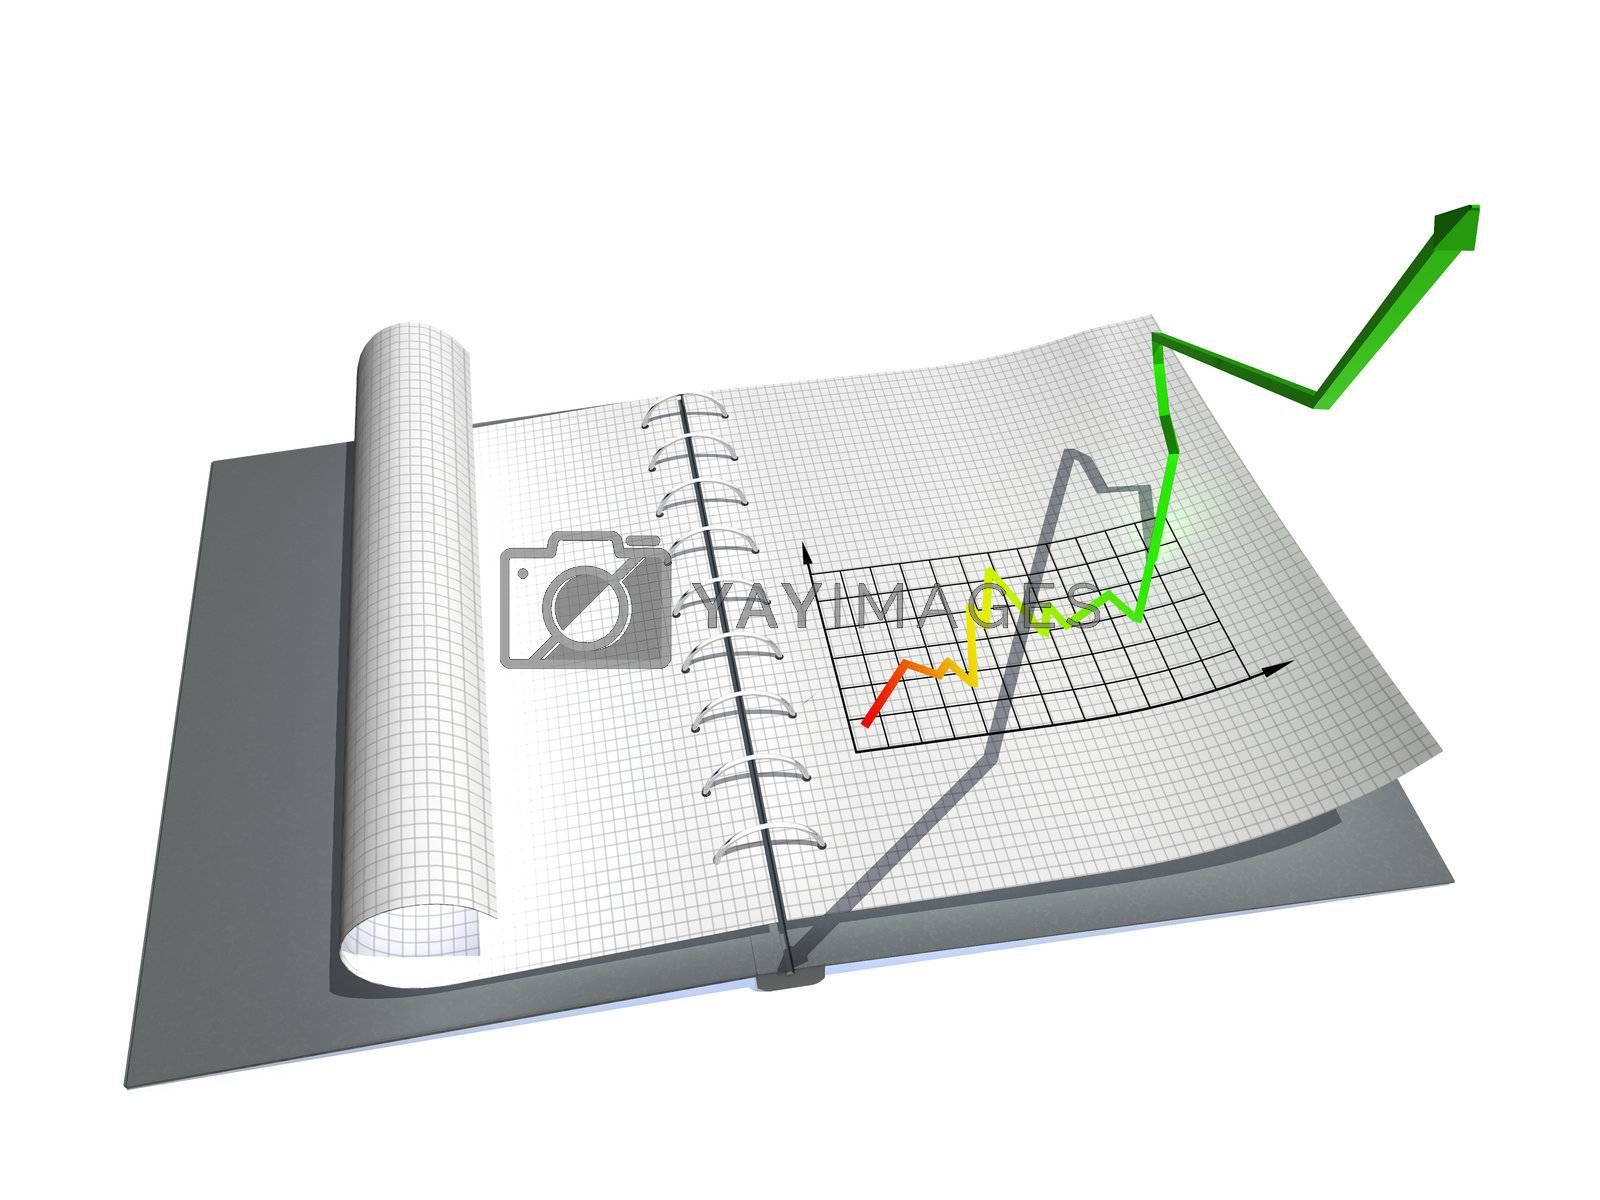 3d scene notebook with stylized by graph